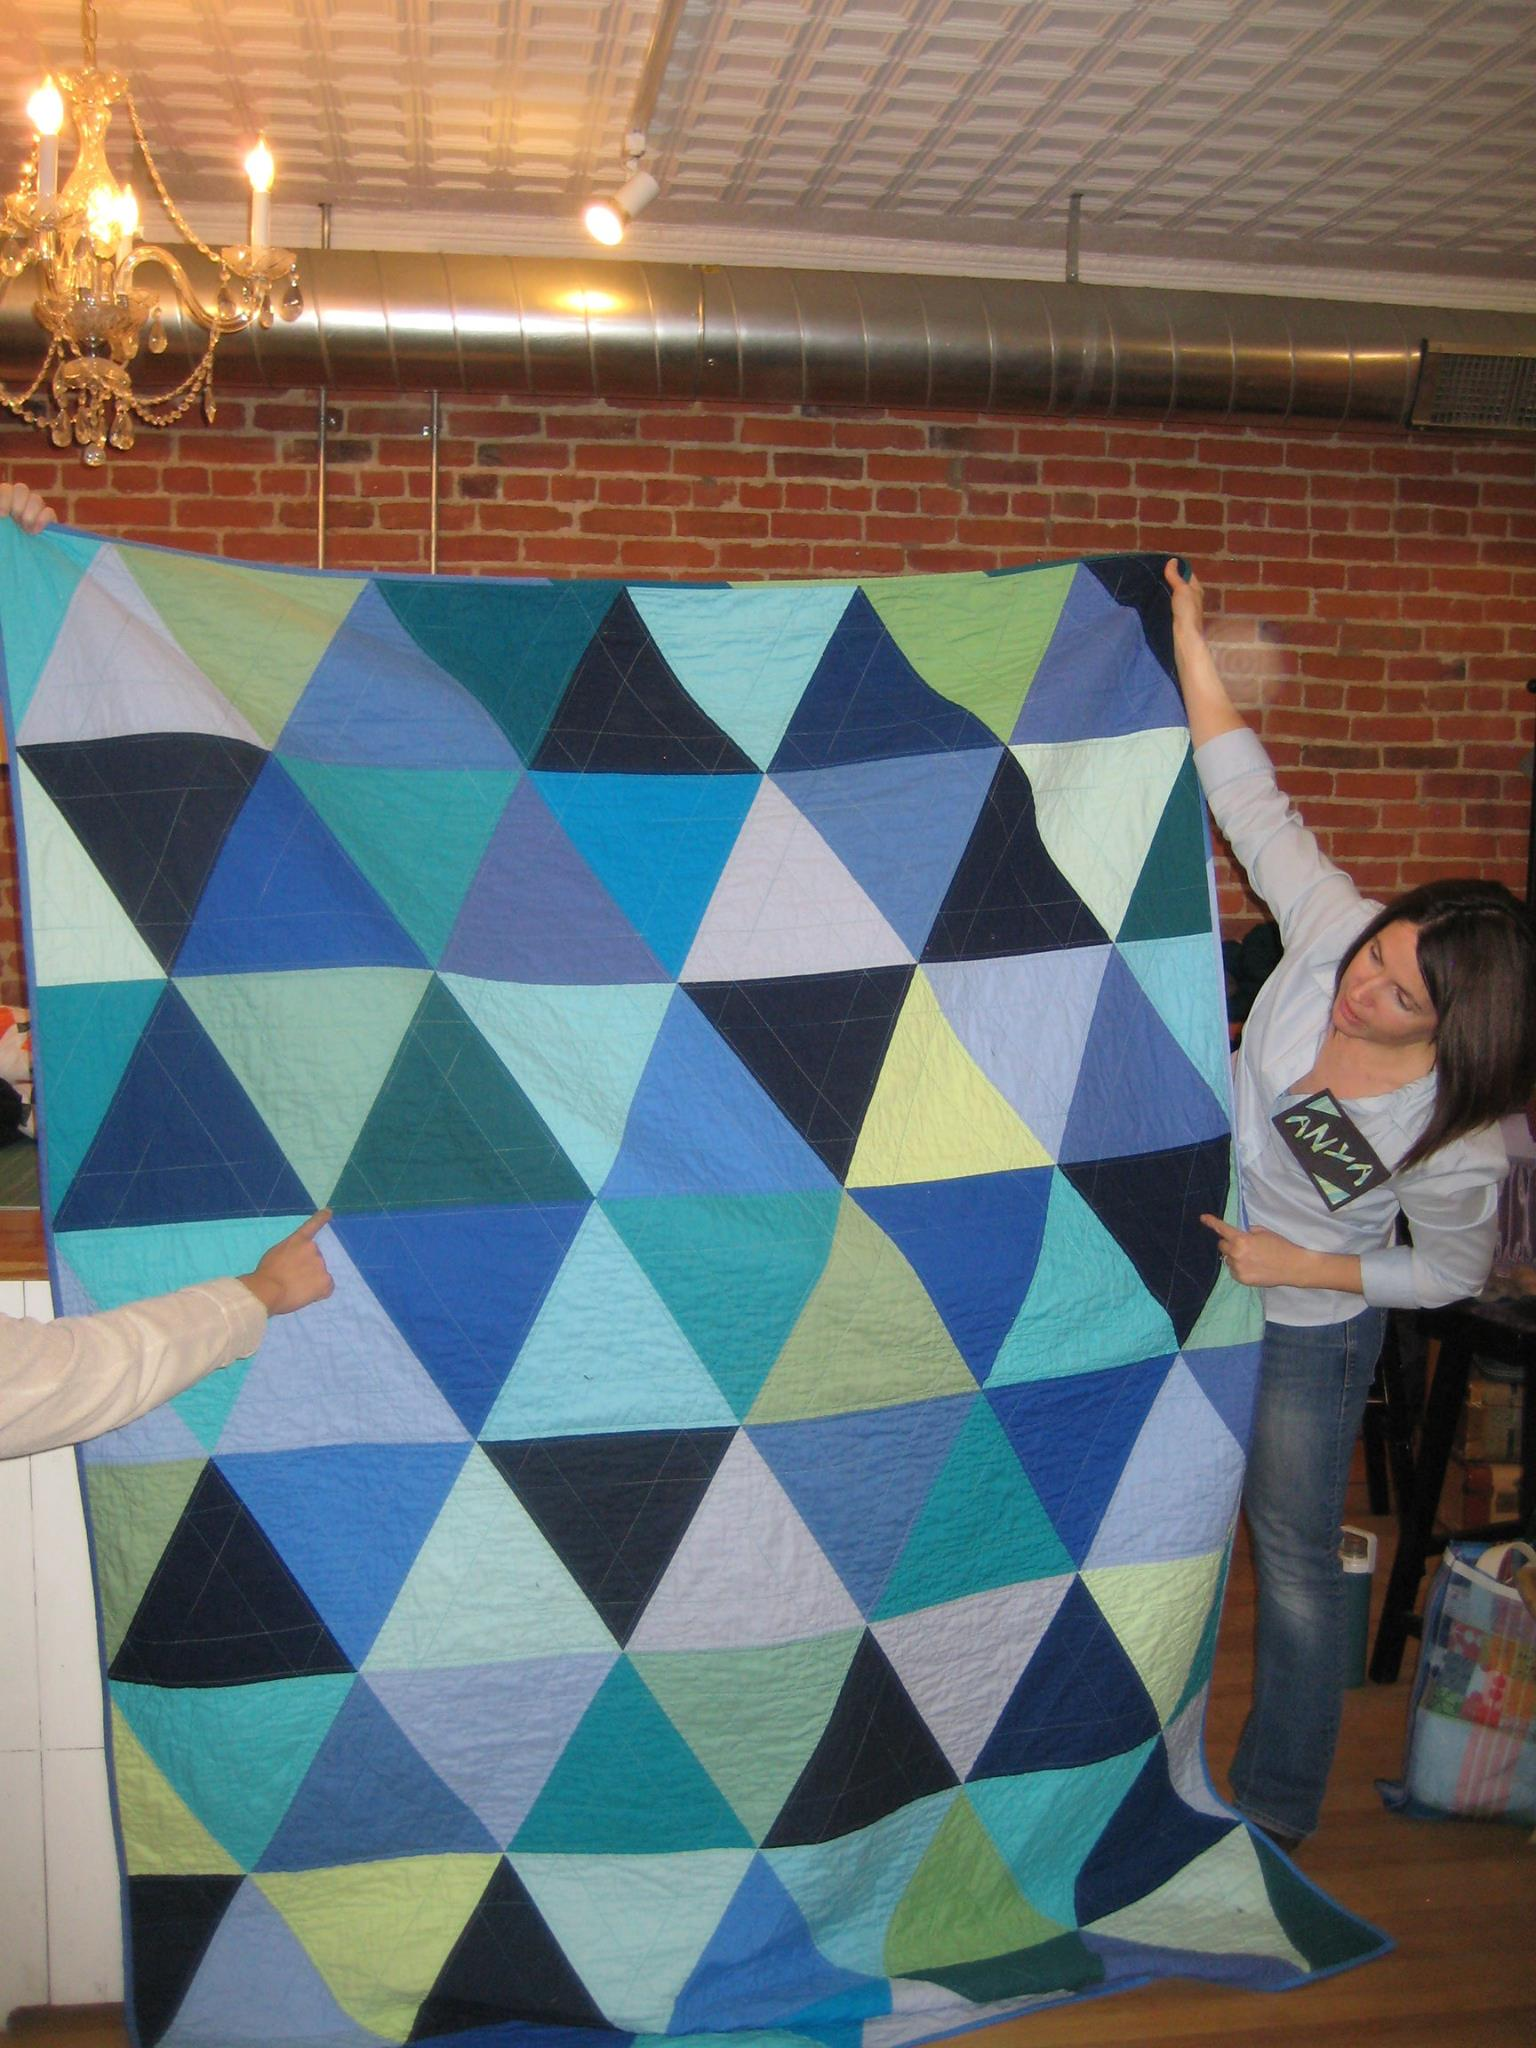 The quilting forms a secondary star pattern.